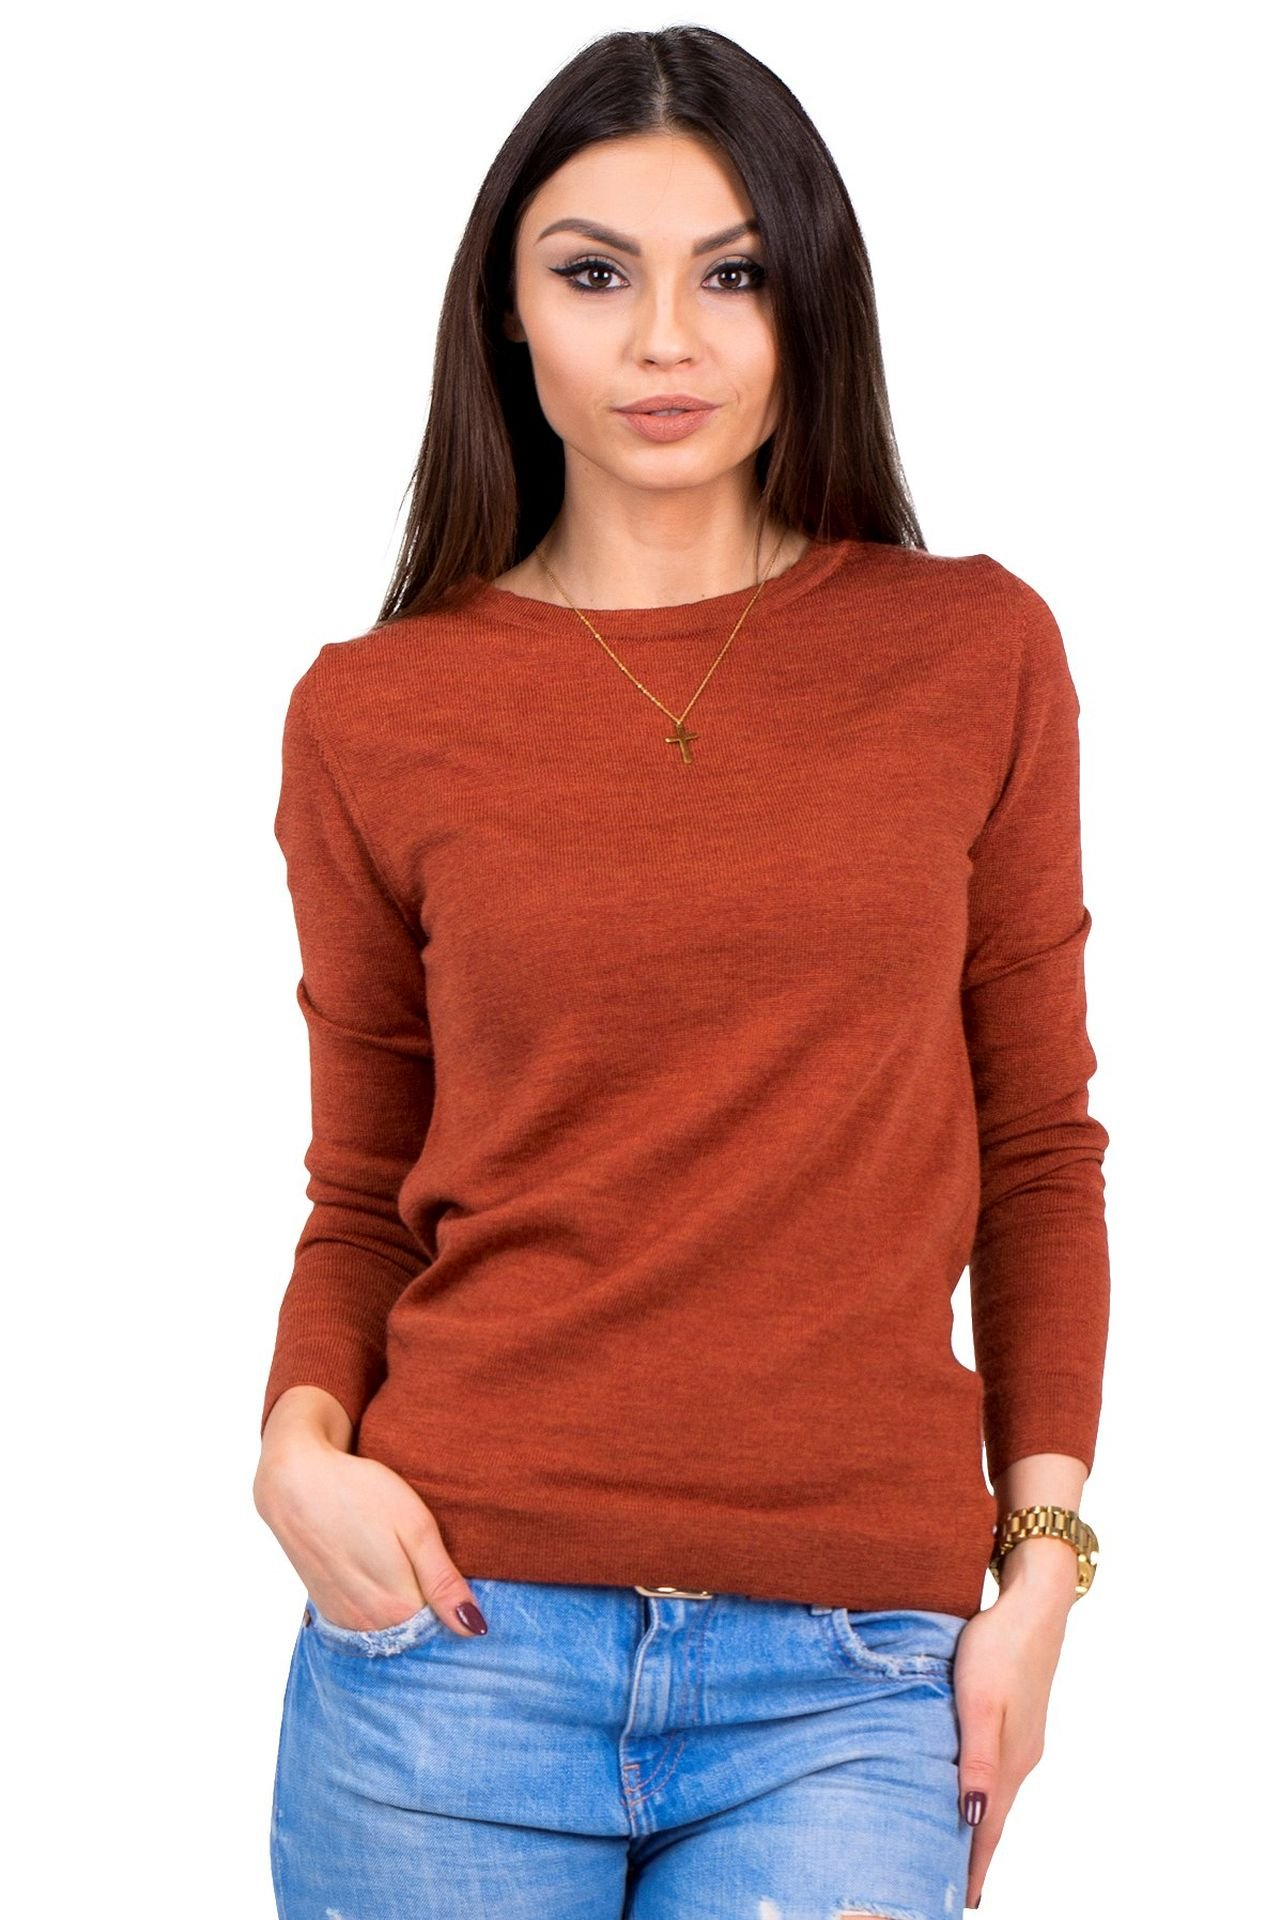 Women's Pure Merino Wool Classic Knit Top Lightweight Crew Neck Sweater Long Sleeve Pullover (Small, Orange) by KNITTONS